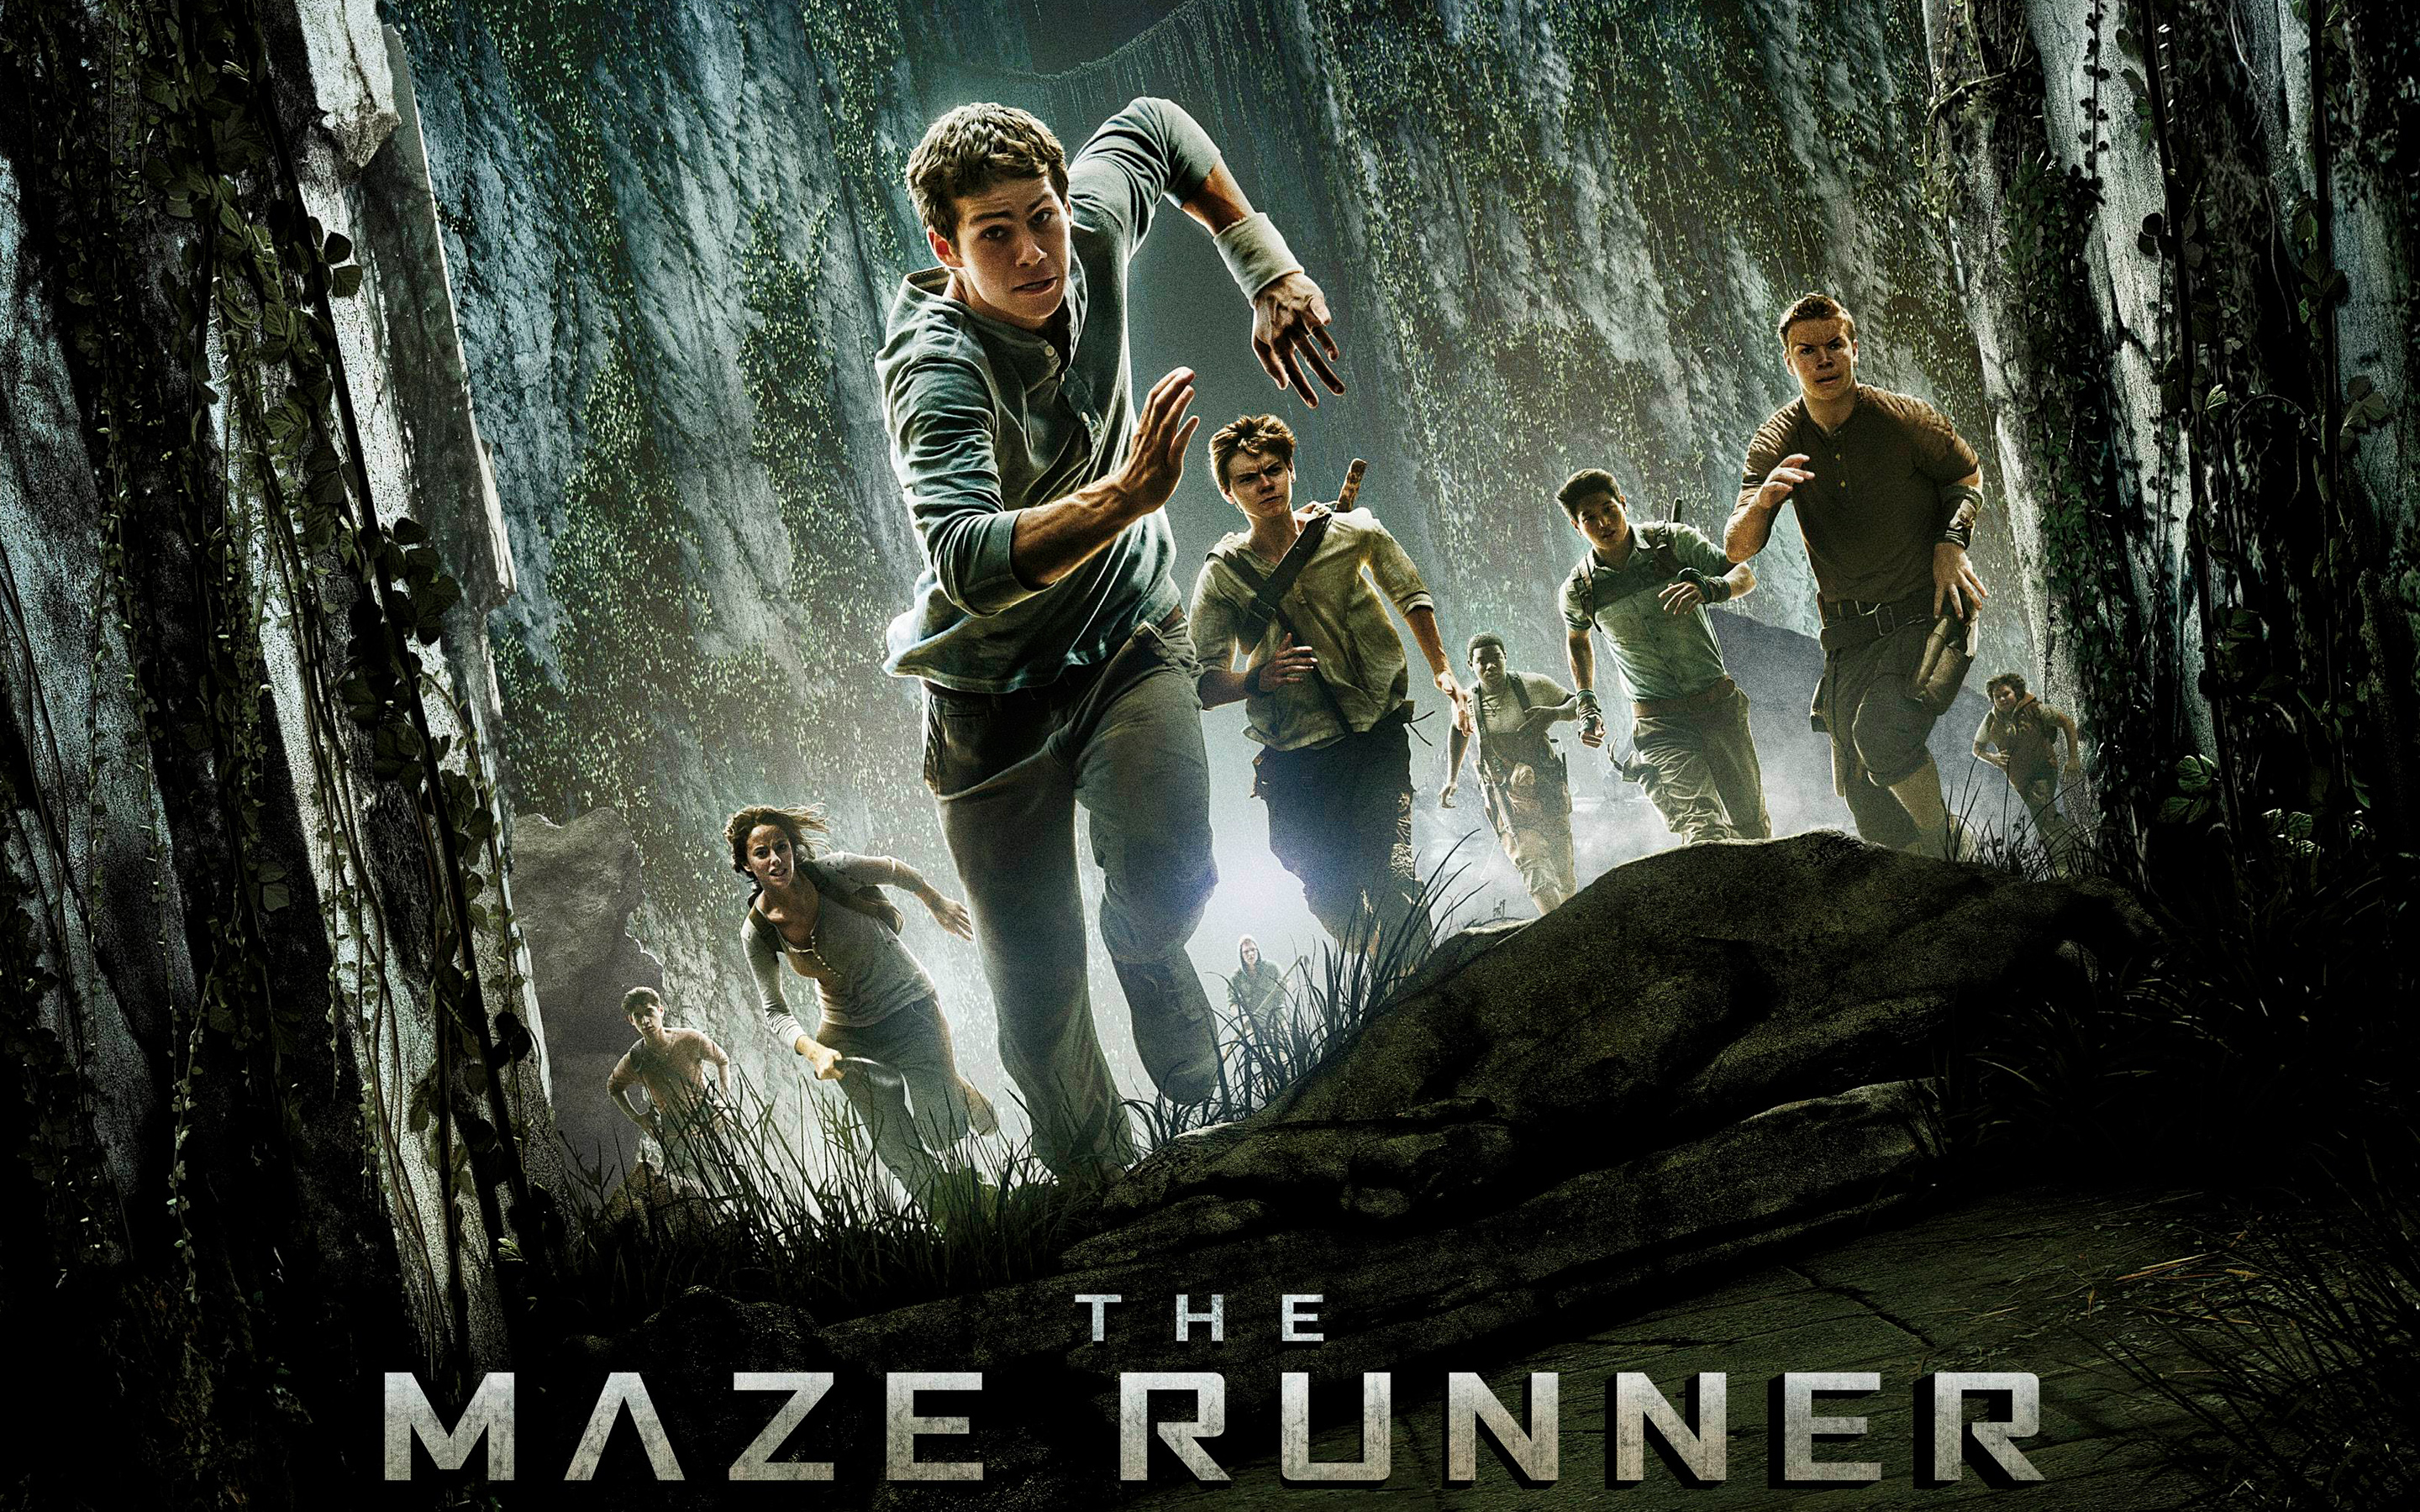 Went to see the Maze Runner last night. Yet another Dystopian YA book adaptation. I know people love The Hunger Games and Divergent books but I thought the ...